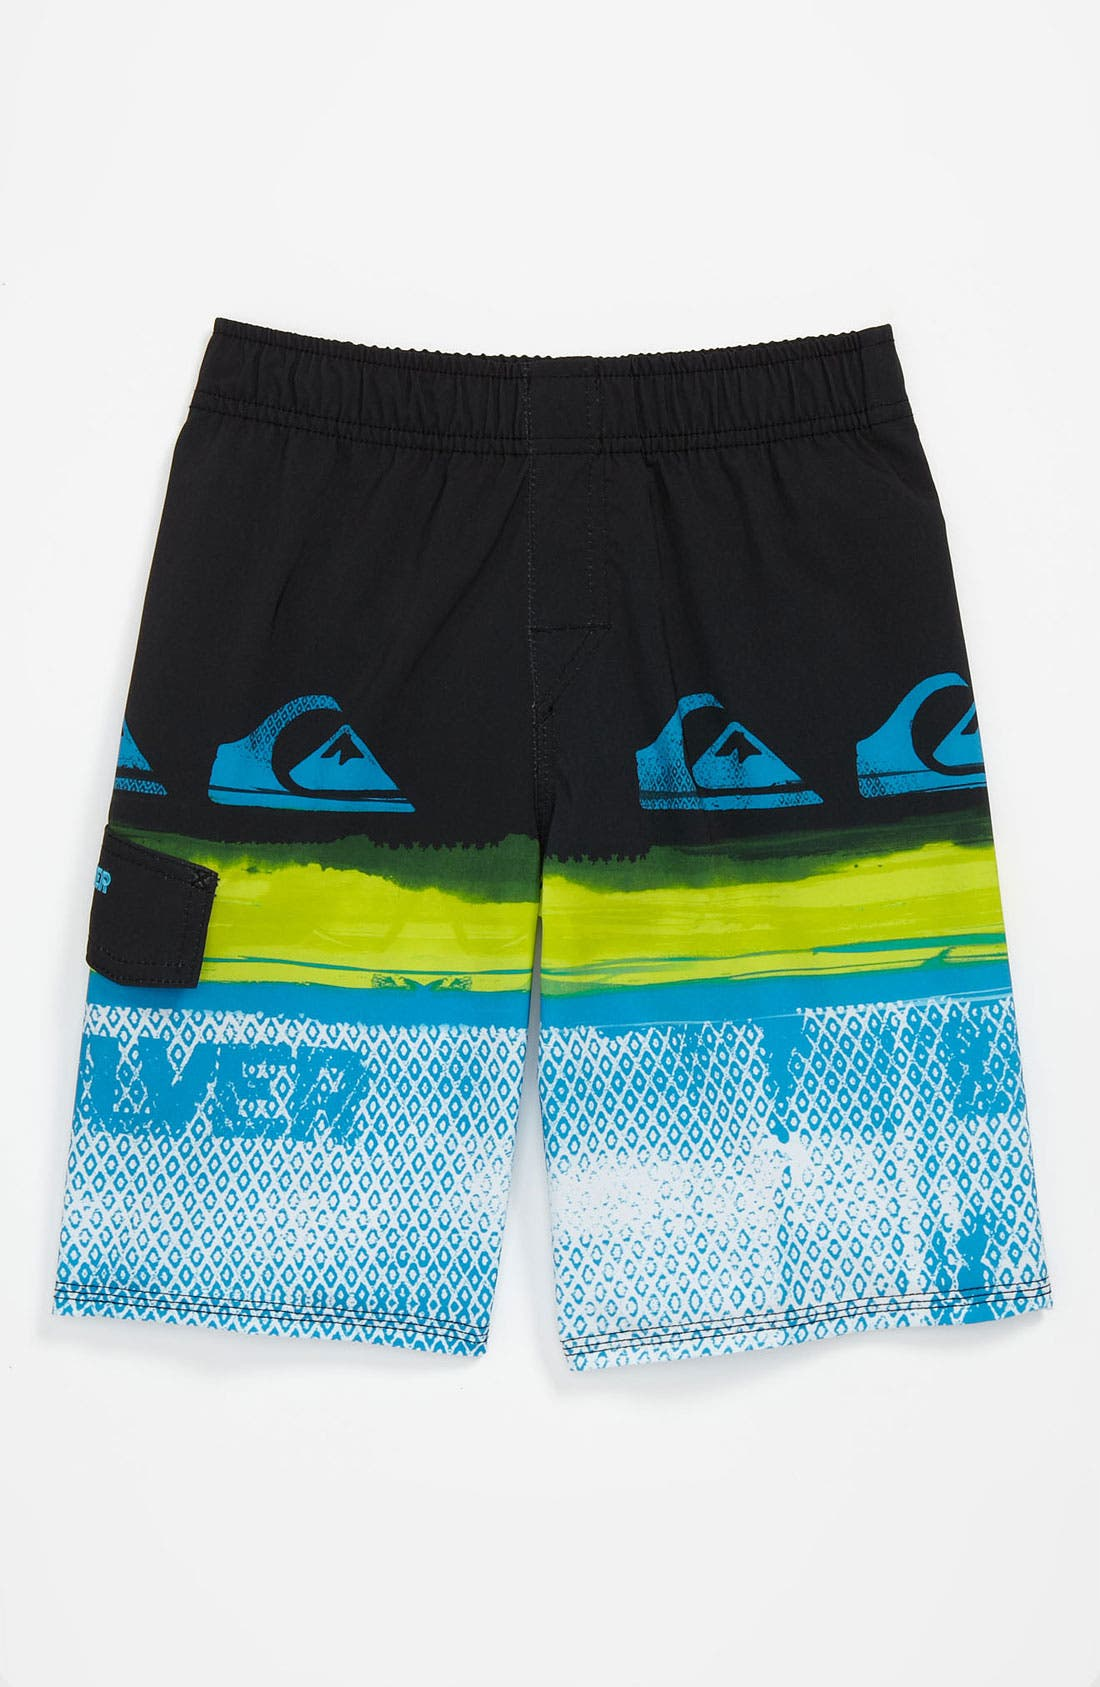 Alternate Image 1 Selected - Quiksilver 'Repeater' Volley Shorts (Big Boys)